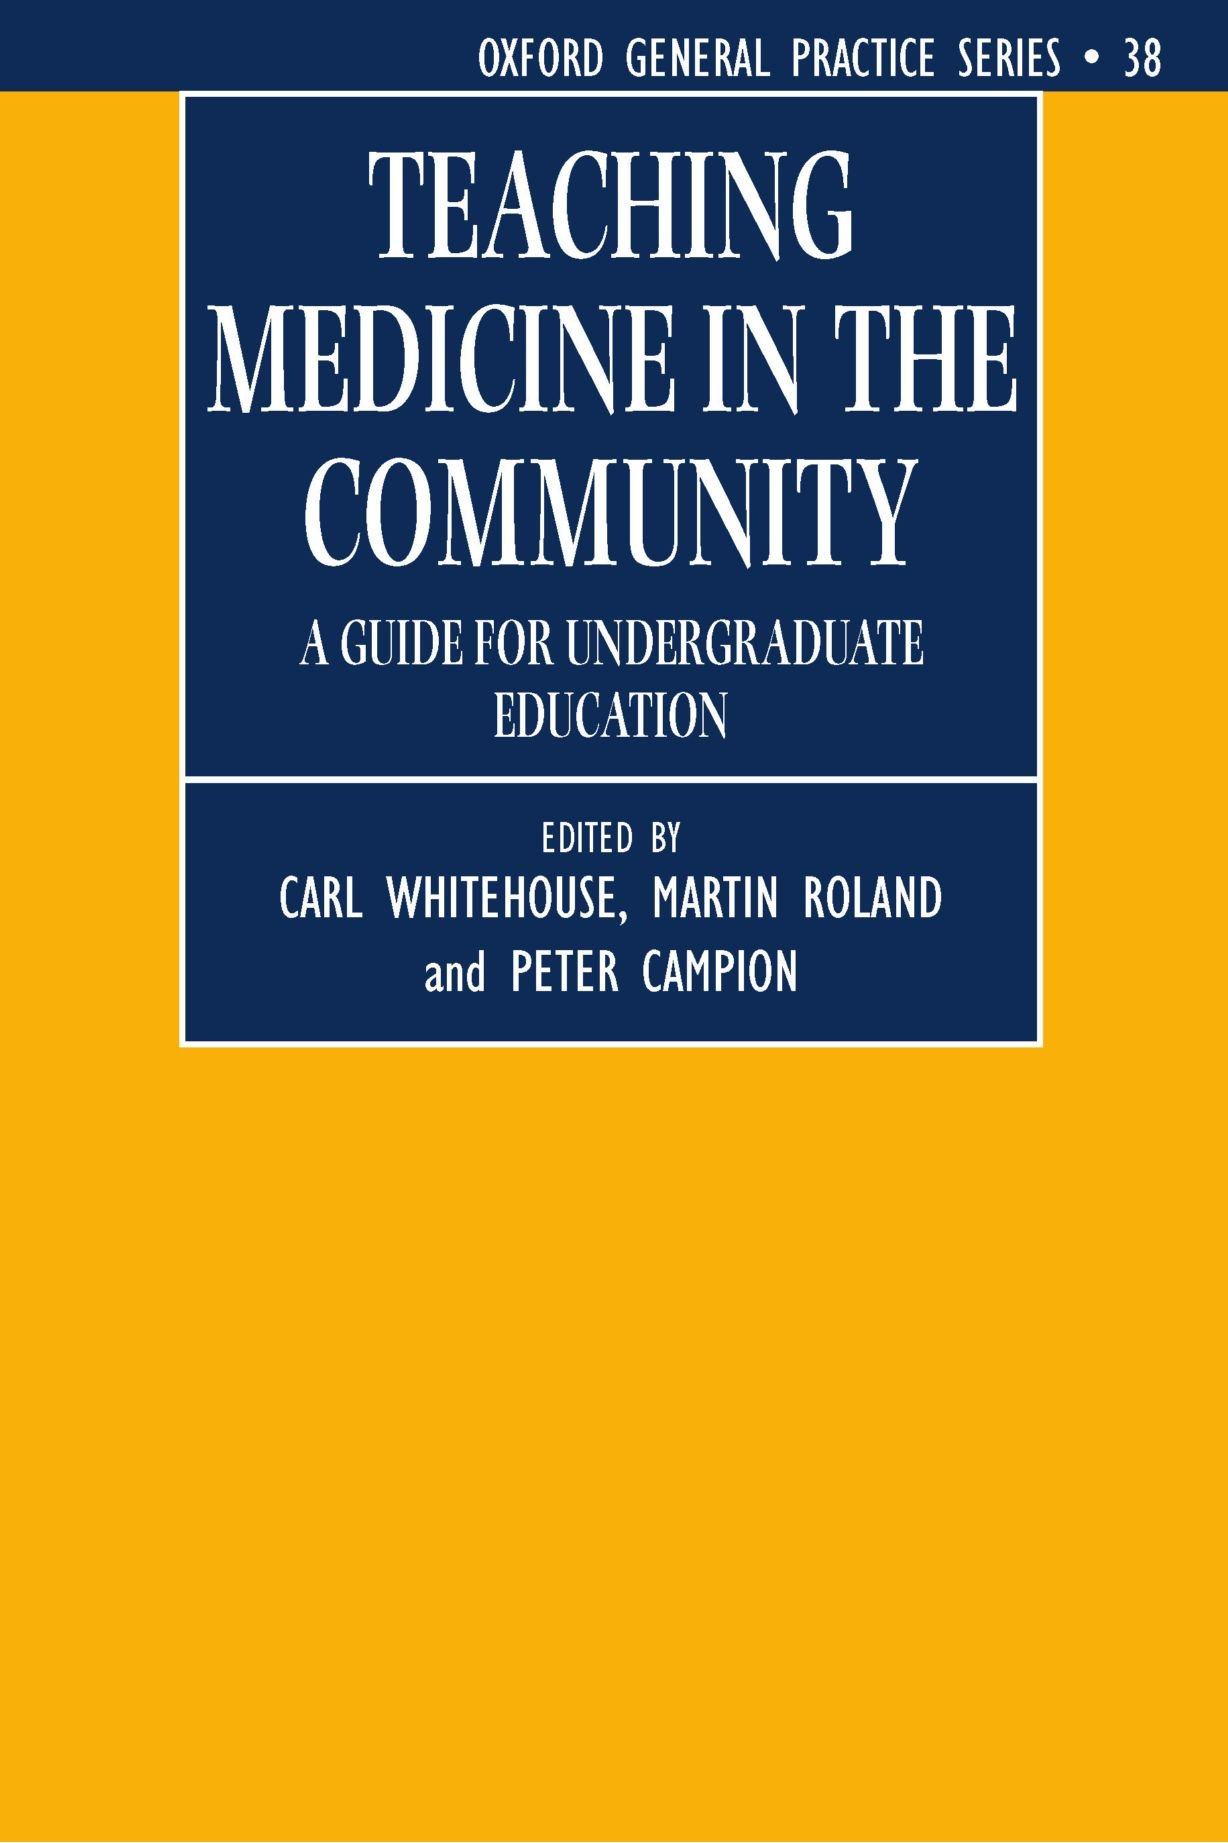 Teaching Medicine in the Community: A Guide for Undergraduate Education